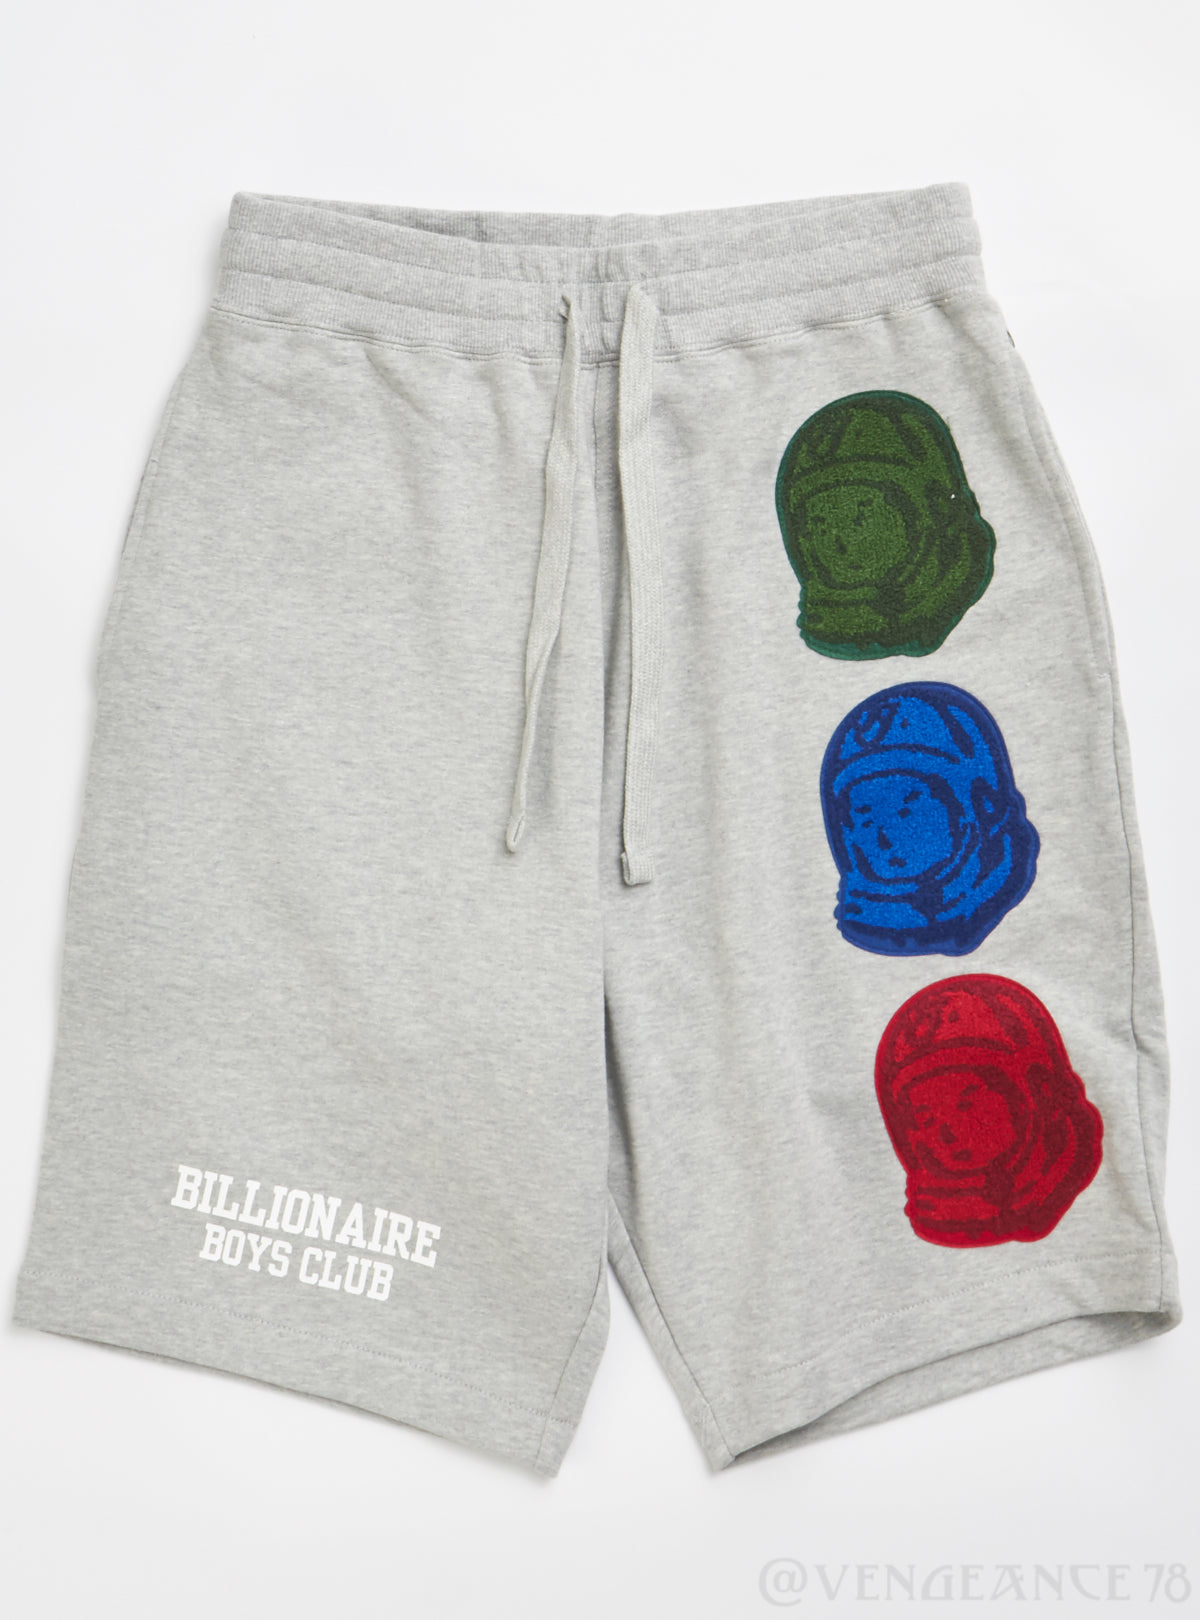 Billionaire Boys Club Shorts - Instructor - Grey - 801-6103